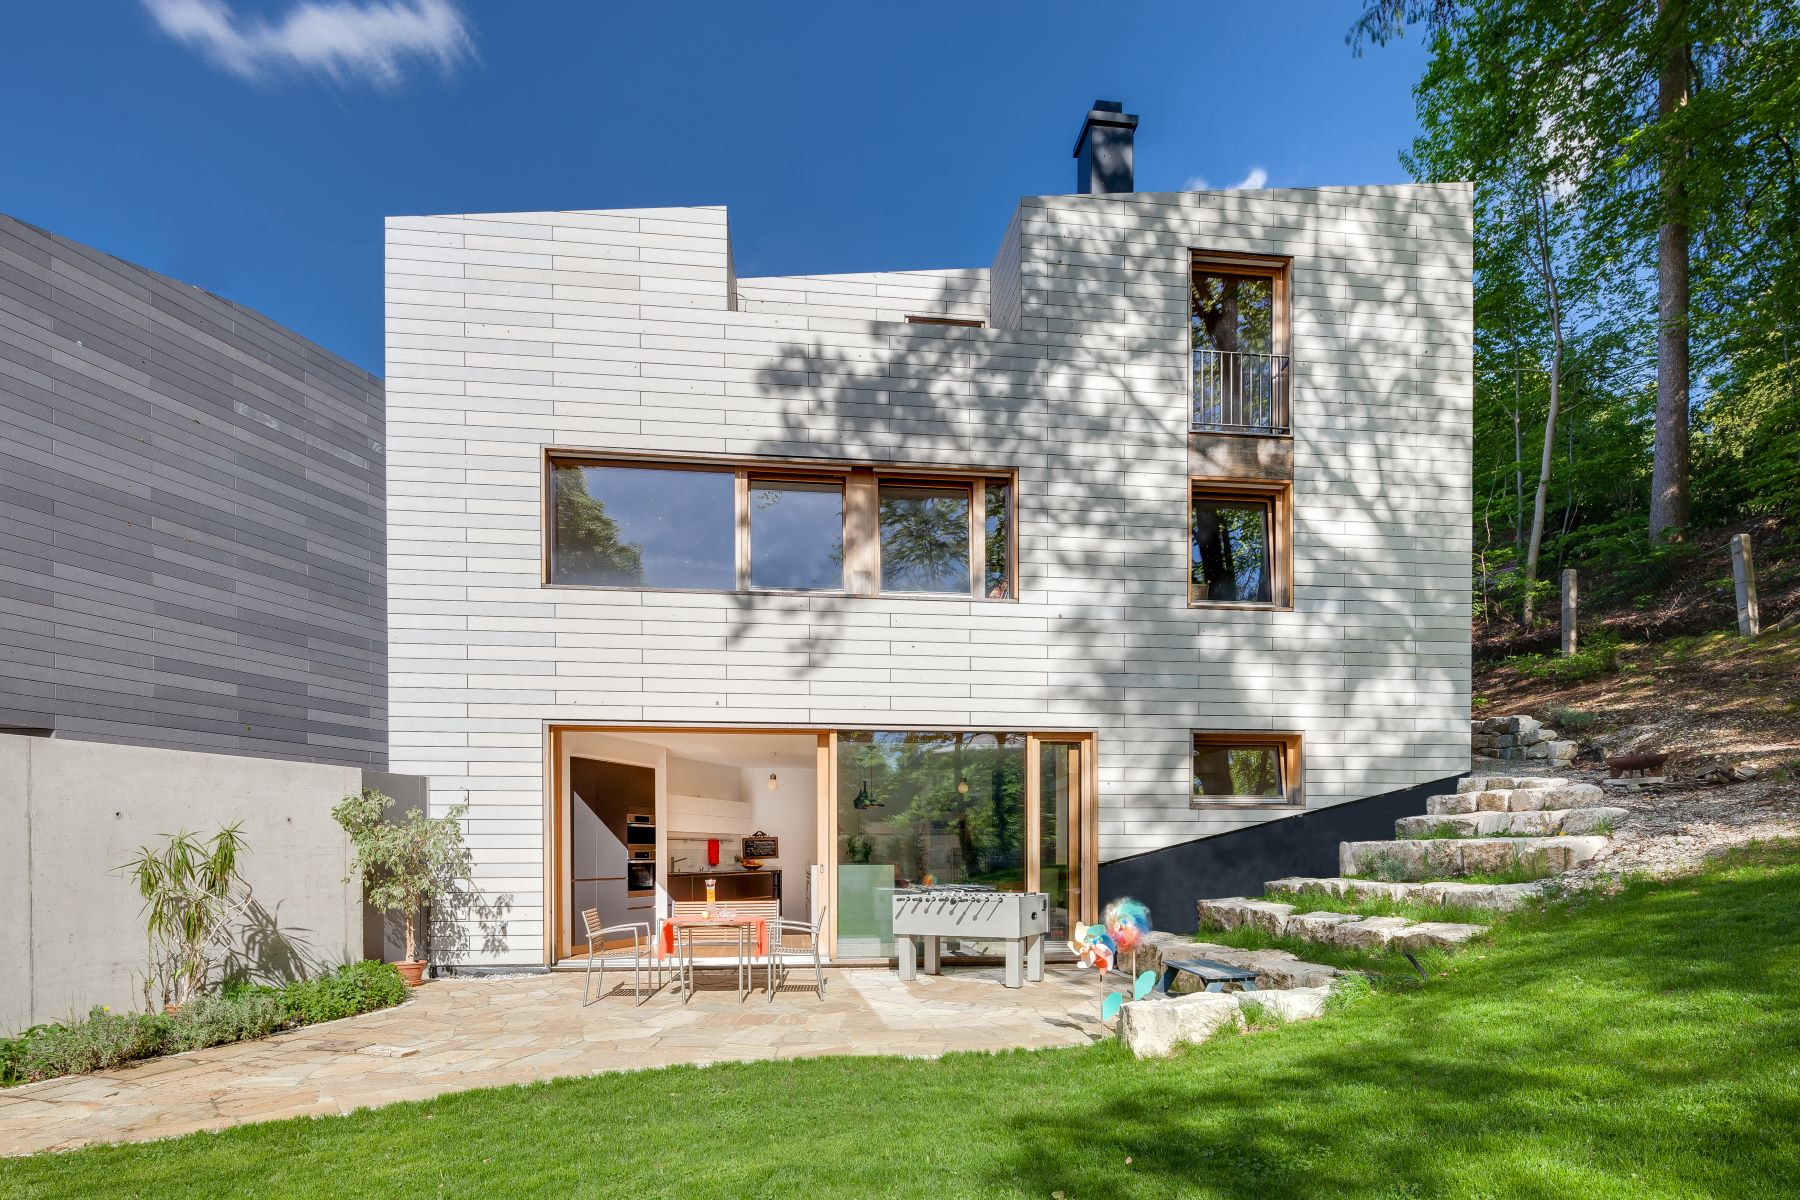 Single Family Homes for Sale at FORM FOLLOWS FUNCTION - MUNICH, GRÜNWALD Munich, Bavaria Germany